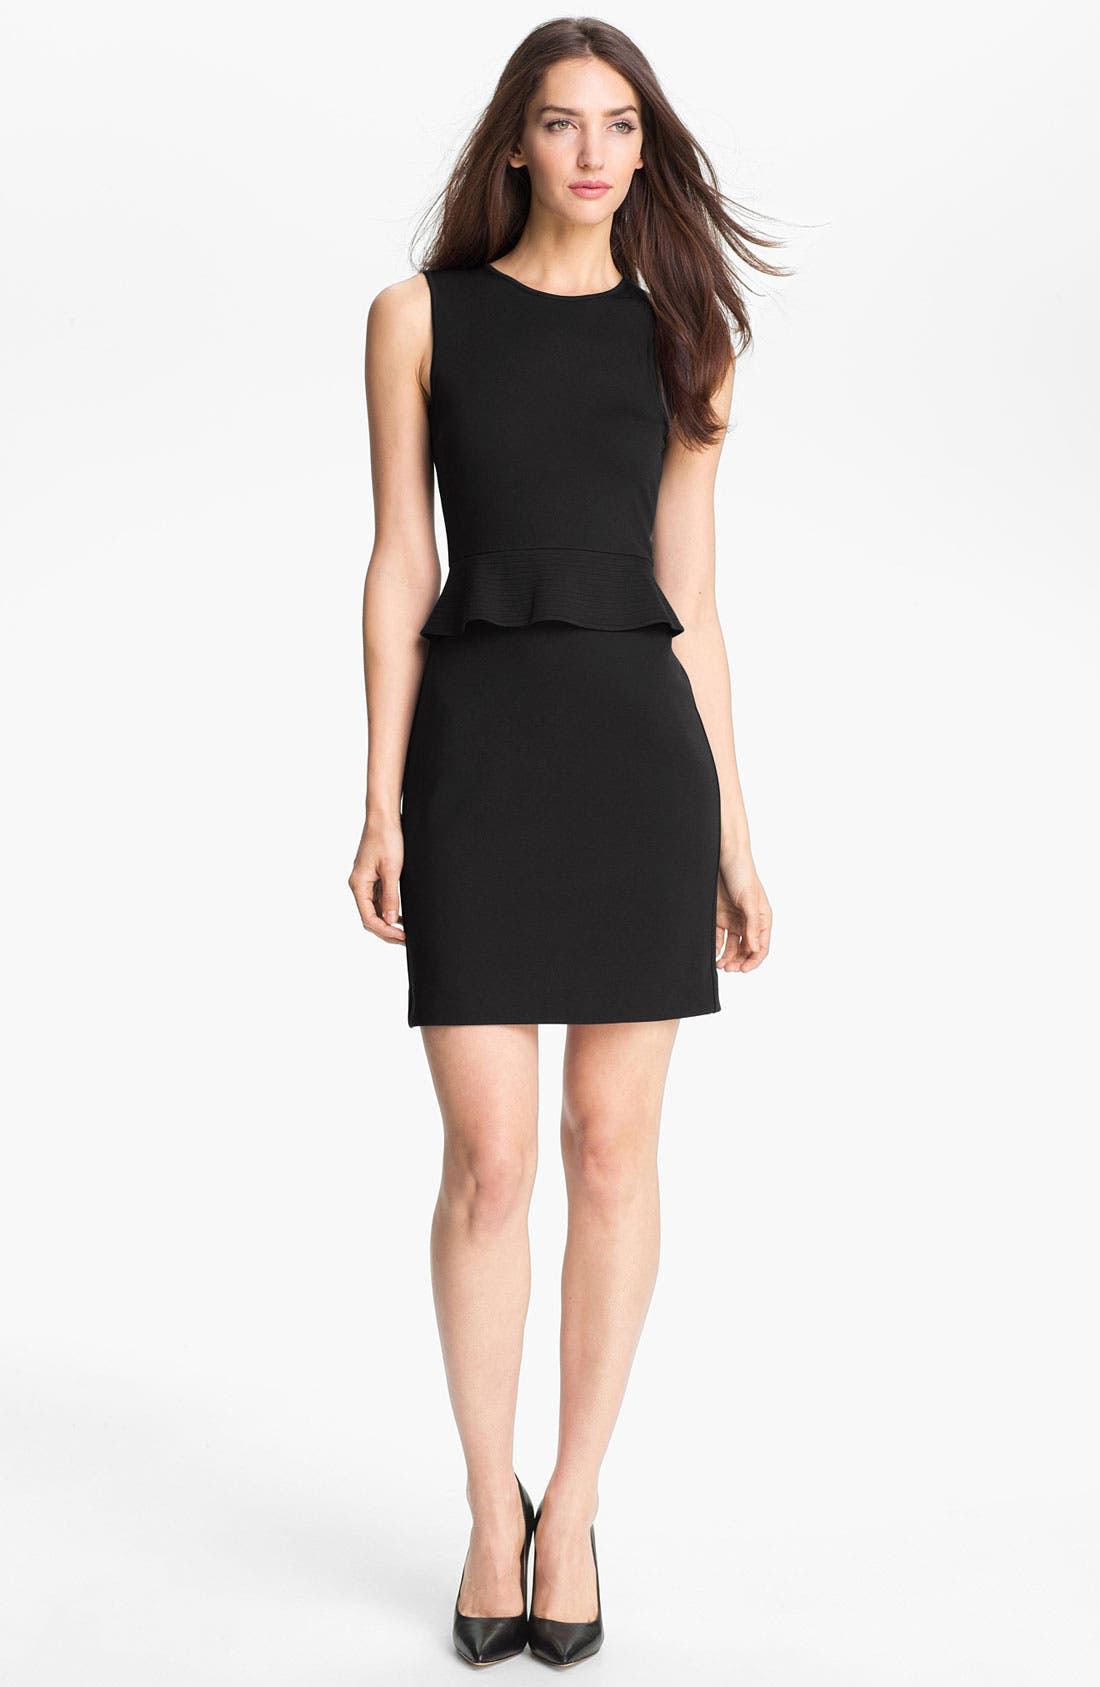 Main Image - Theory 'Dellera' Stretch Knit Sheath Dress